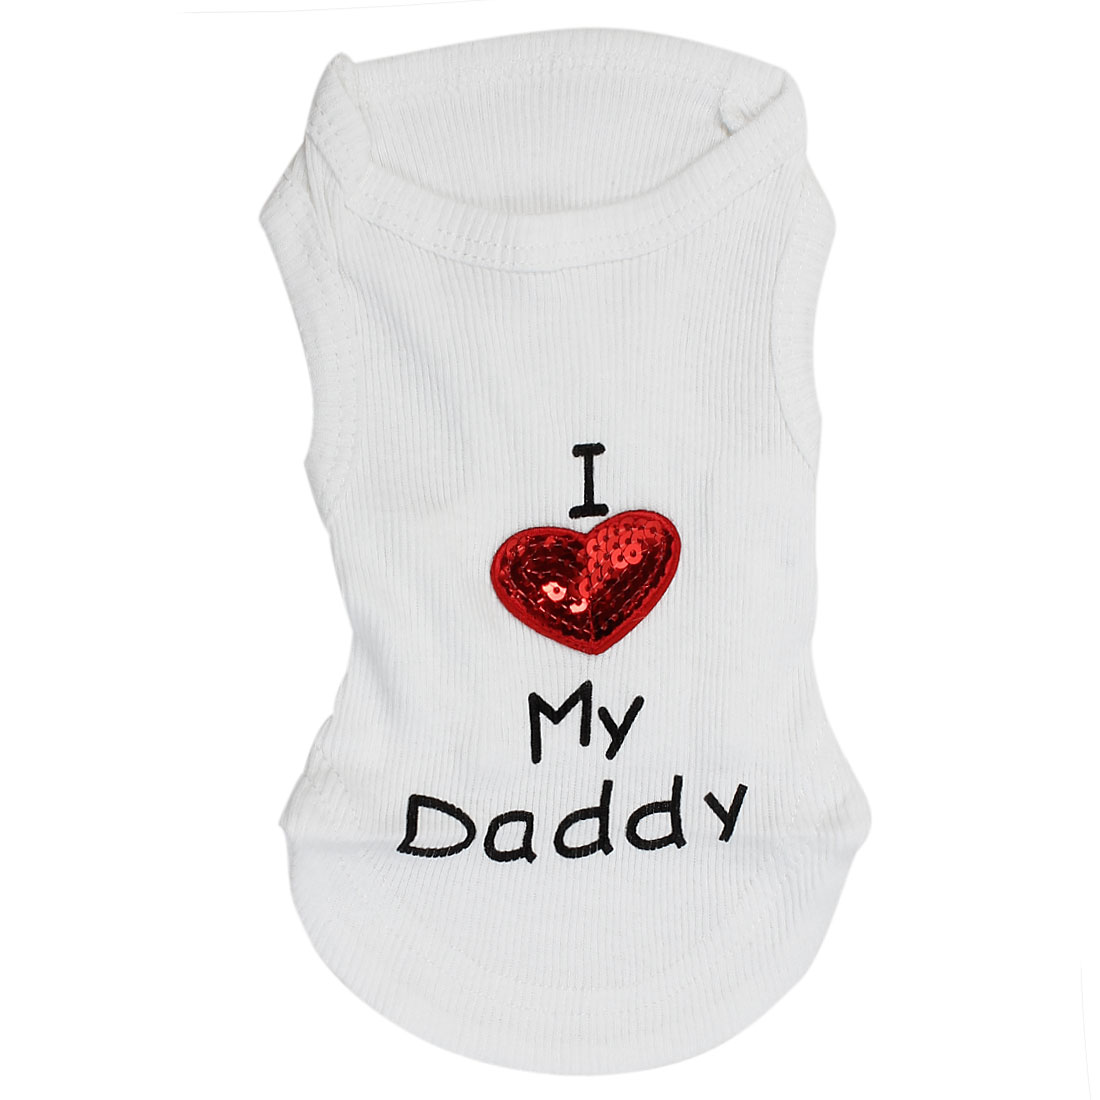 I Love My Daddy Pet Puppy Summer Tank Top T-shirt Vest Clothes Apparel White Size XS